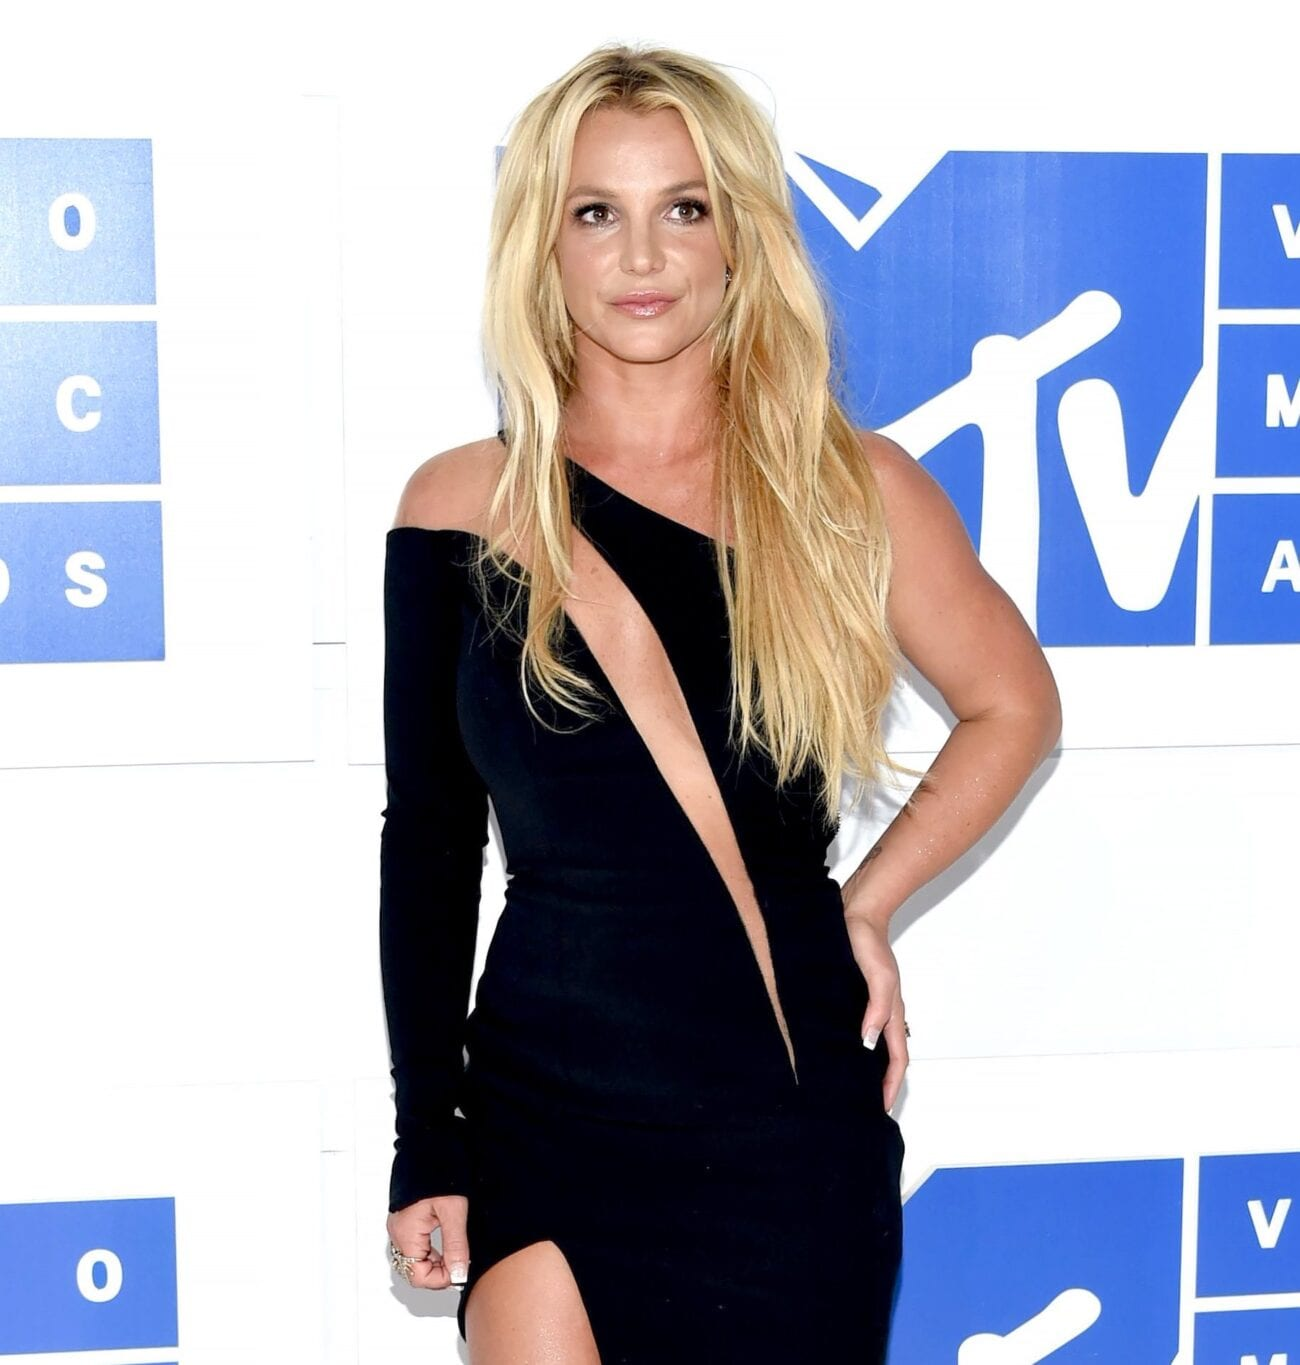 The #FreeBritney situation has seen a court update. Here's what you need to know about the pop star's plight.